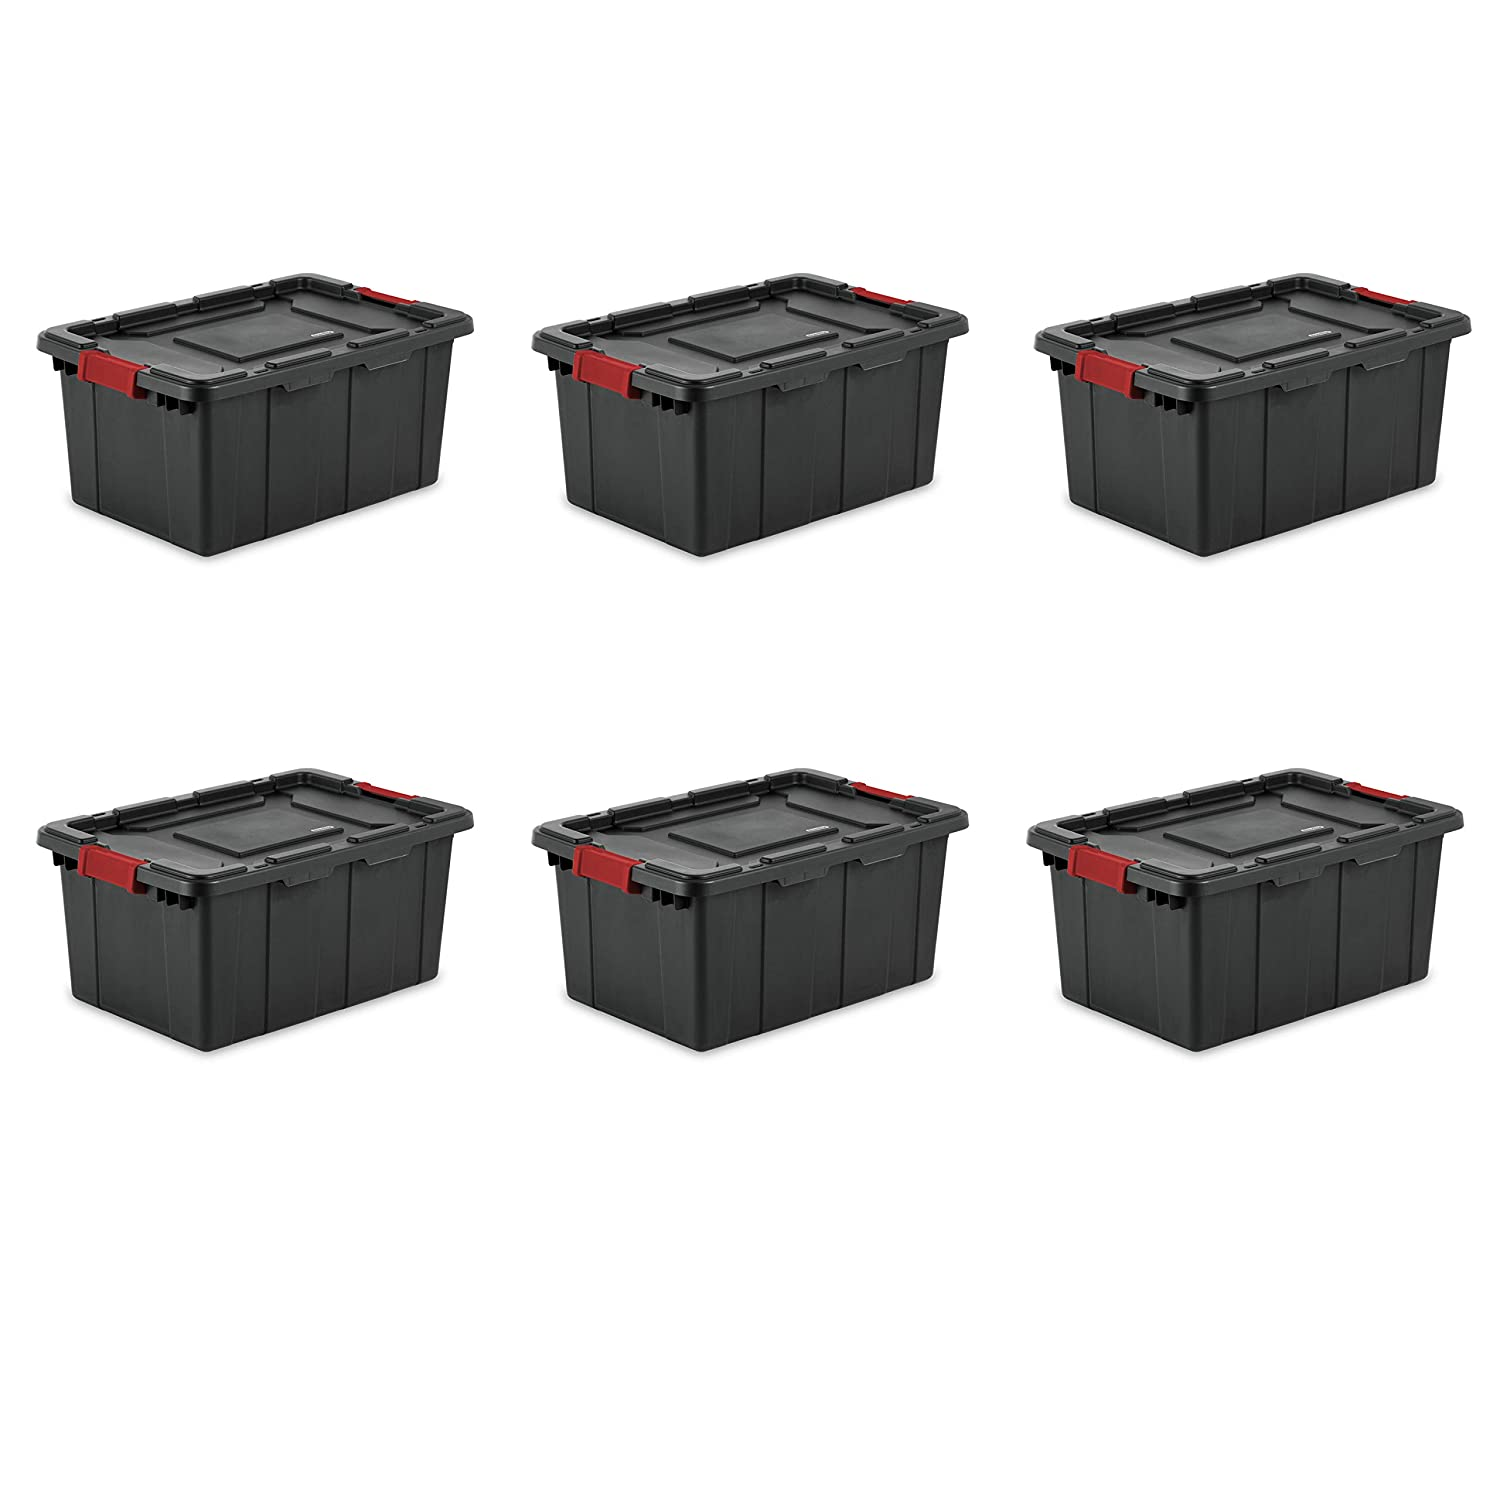 Sterilite 14649006 15 Gallon/57 Liter Industrial Tote, Black Lid & Base w/ Racer Red Latches, 6-Pack